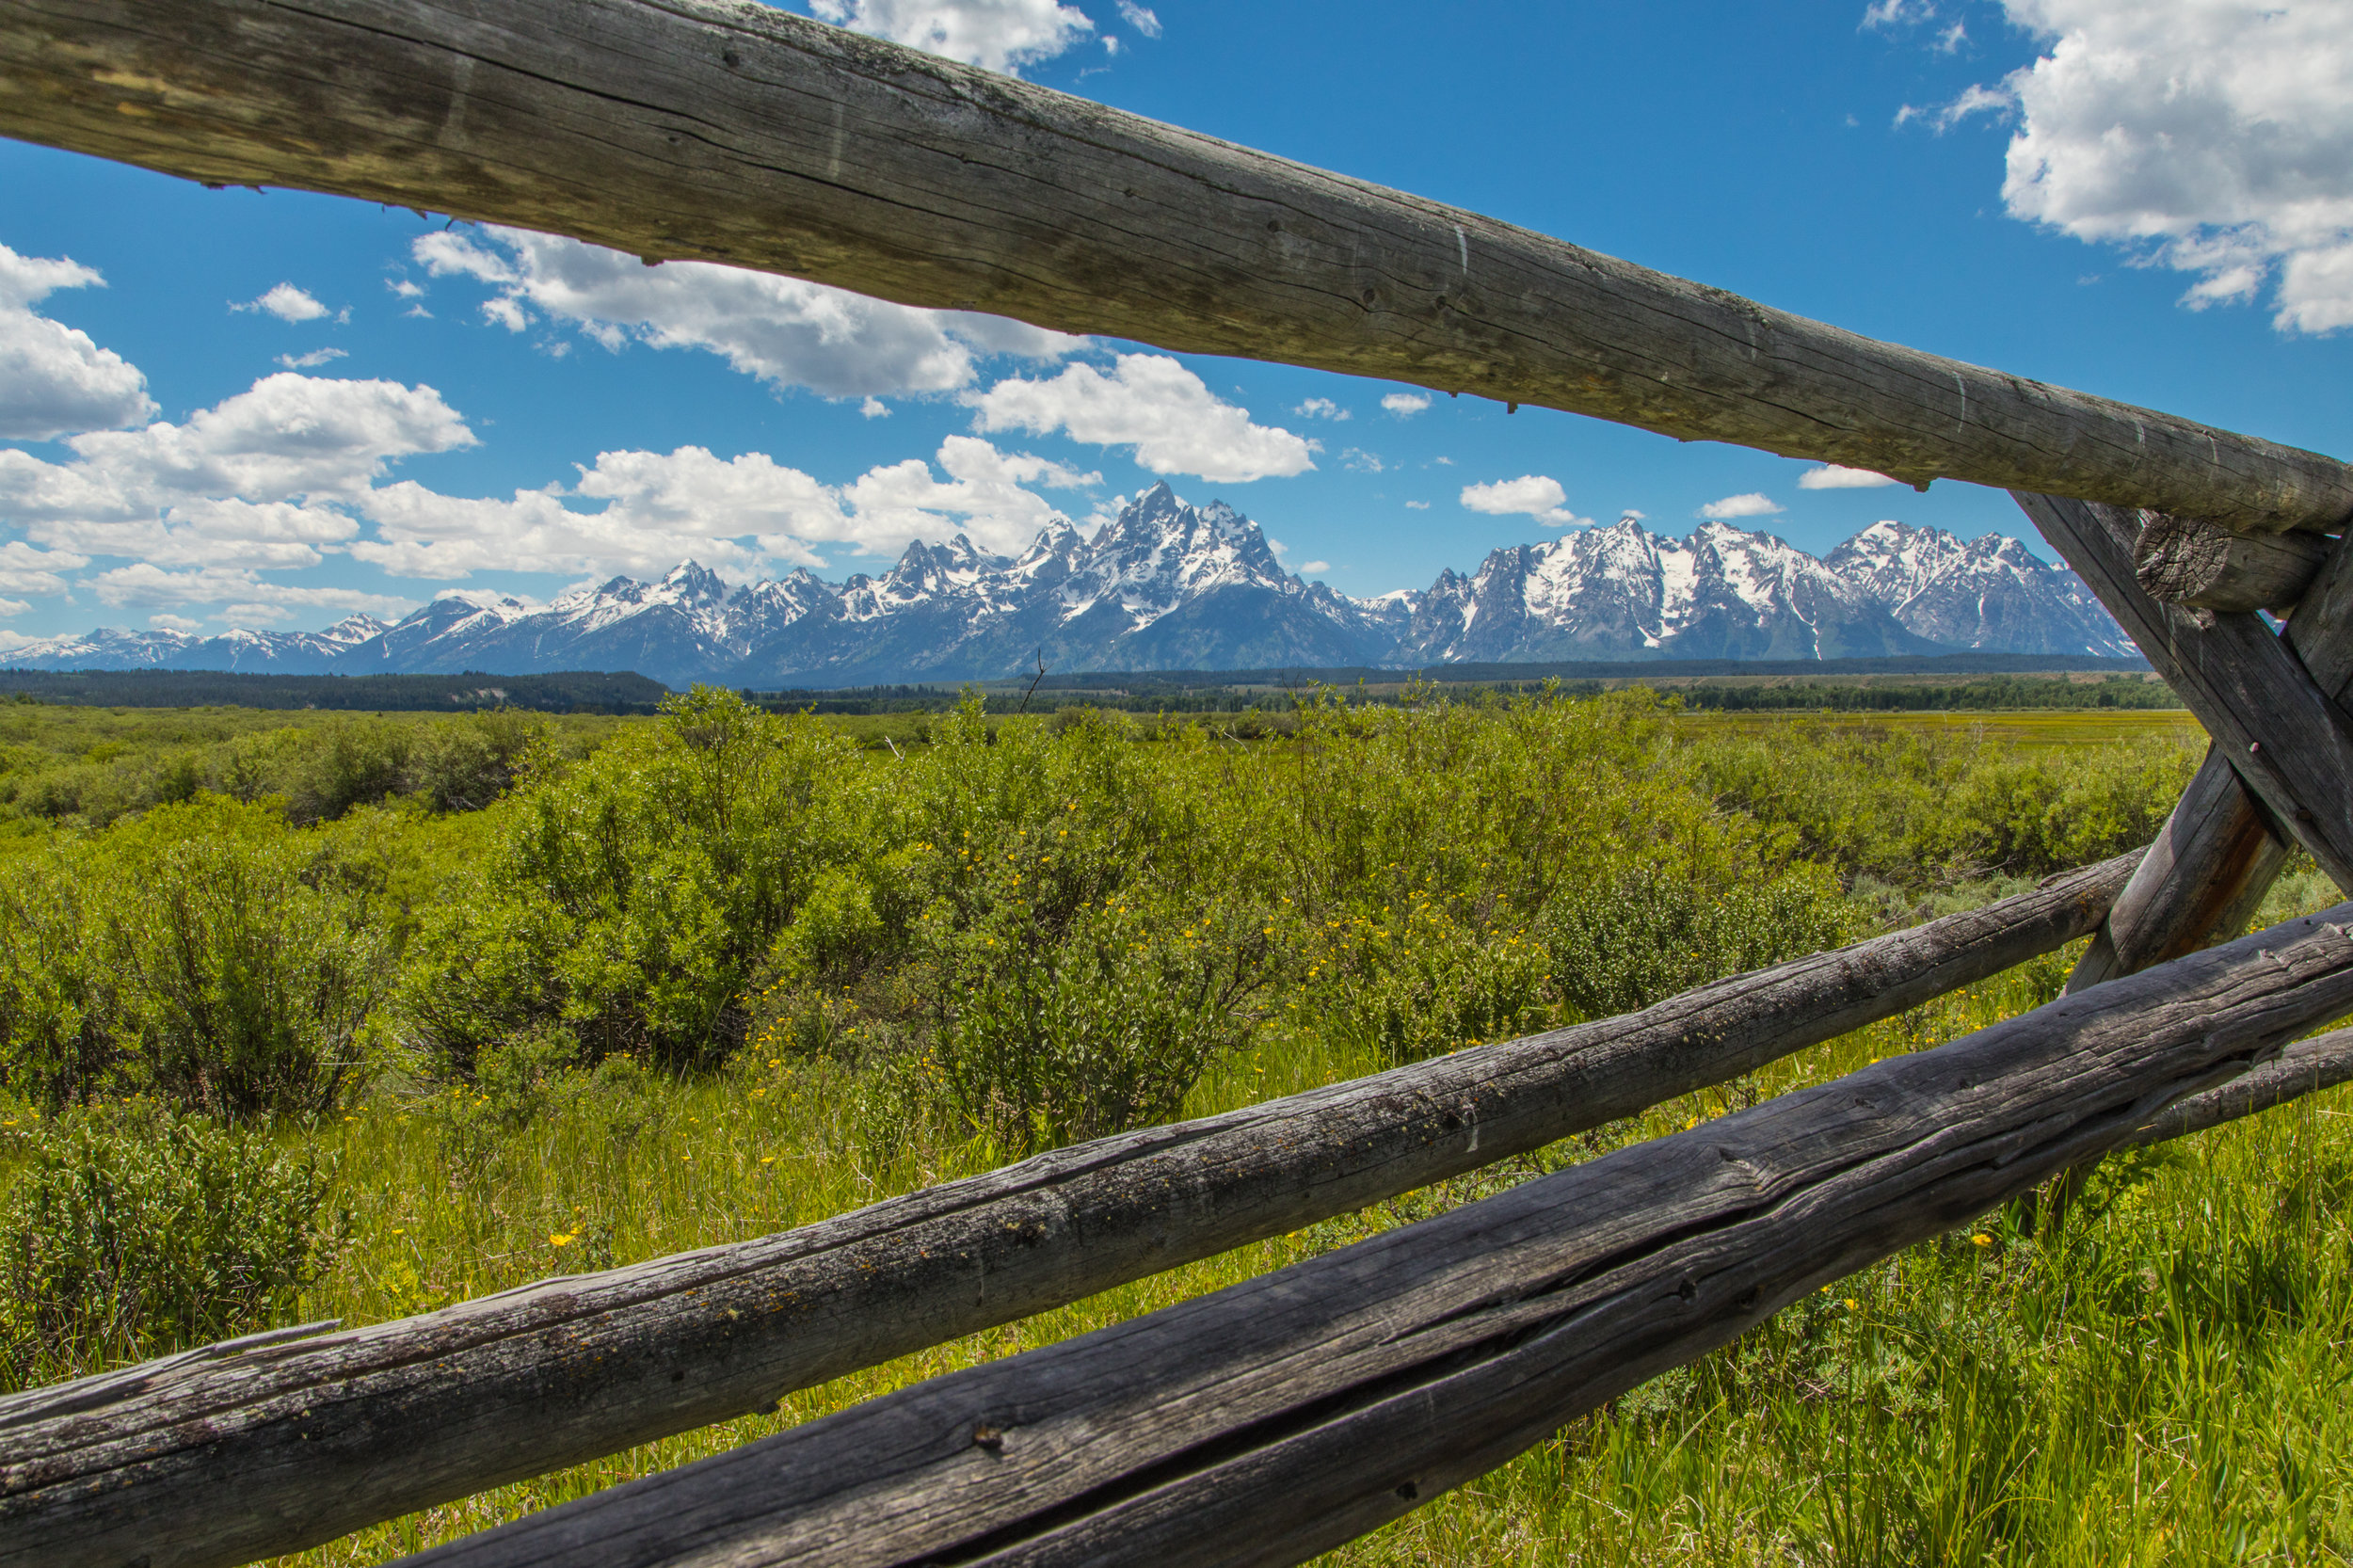 Cunningham Cabin, Grand Teton National Park, Image # 8332